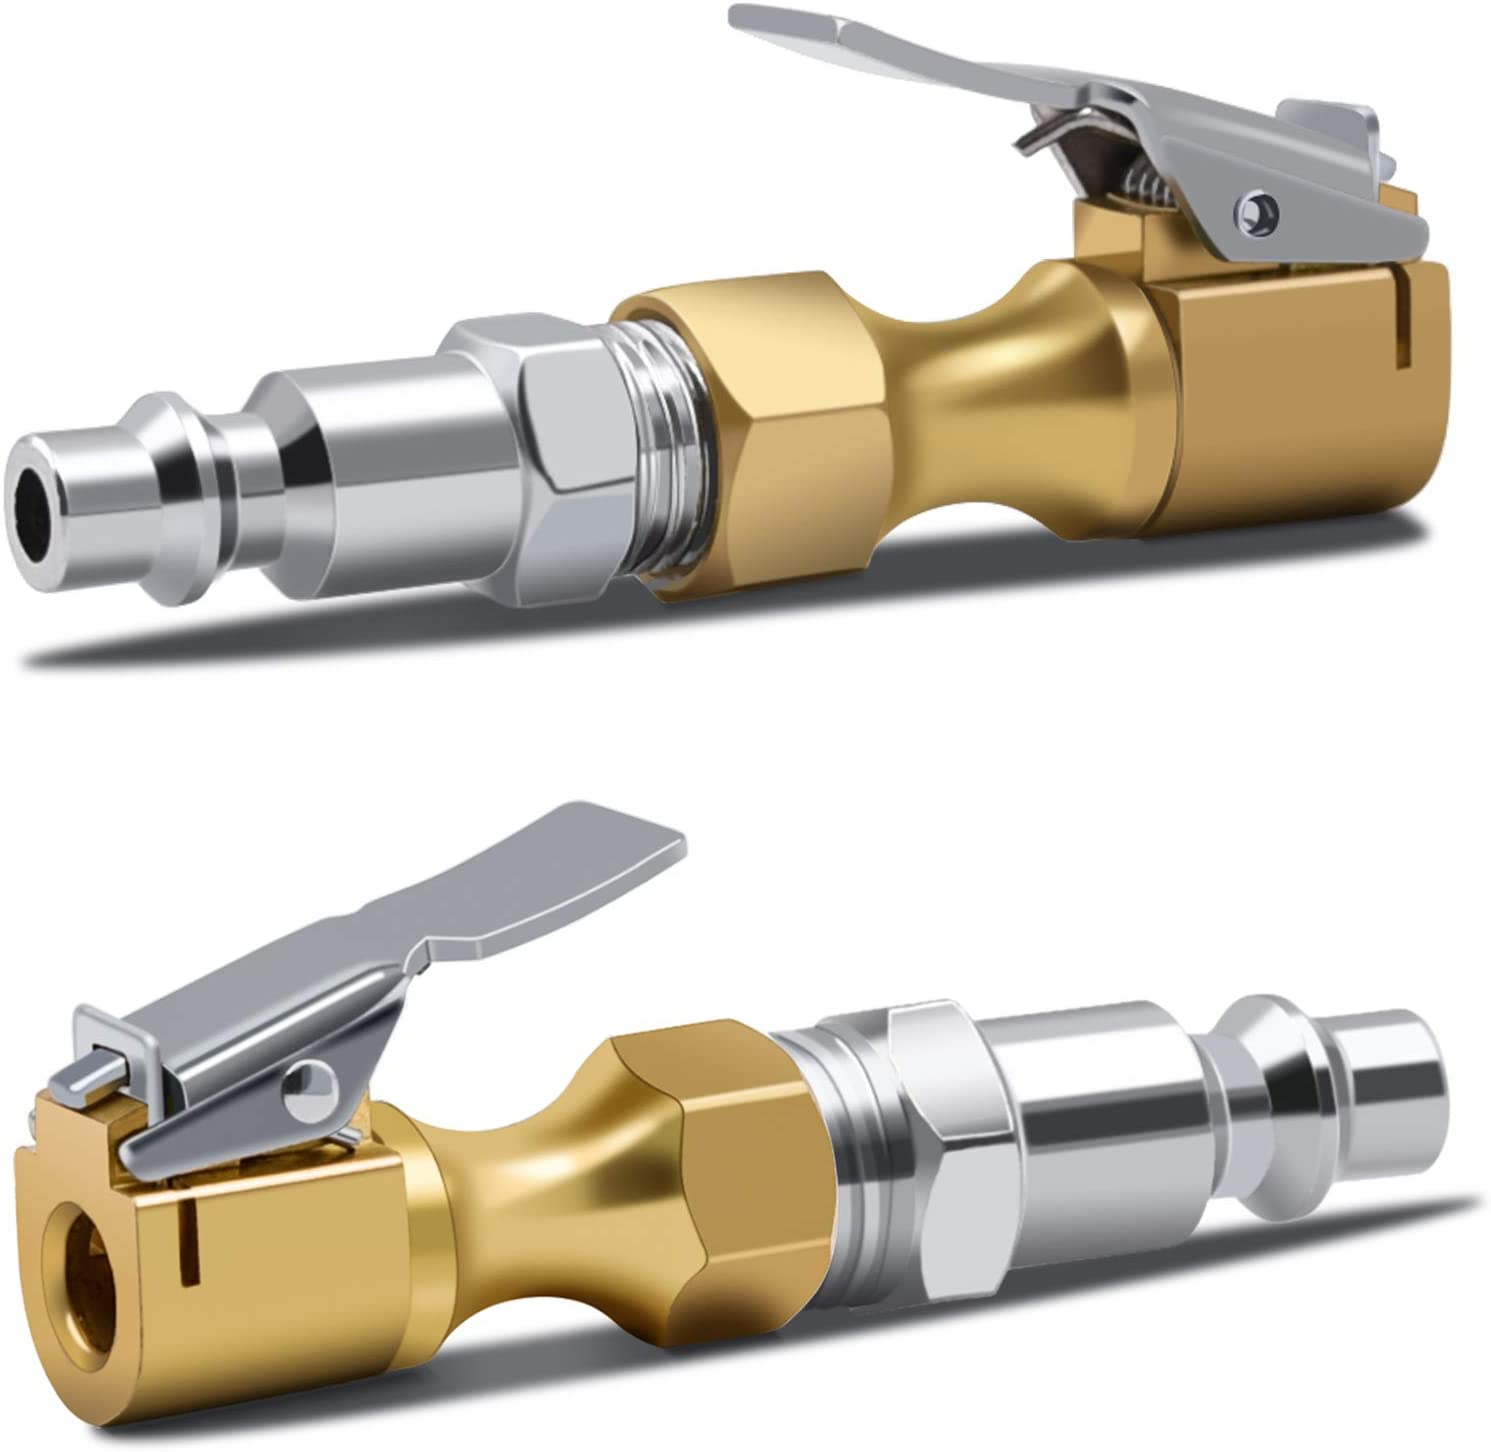 SAFELIFE Brass Air Chuck Closed Lock Duty Tire Heavy Attention brand Flow low-pricing